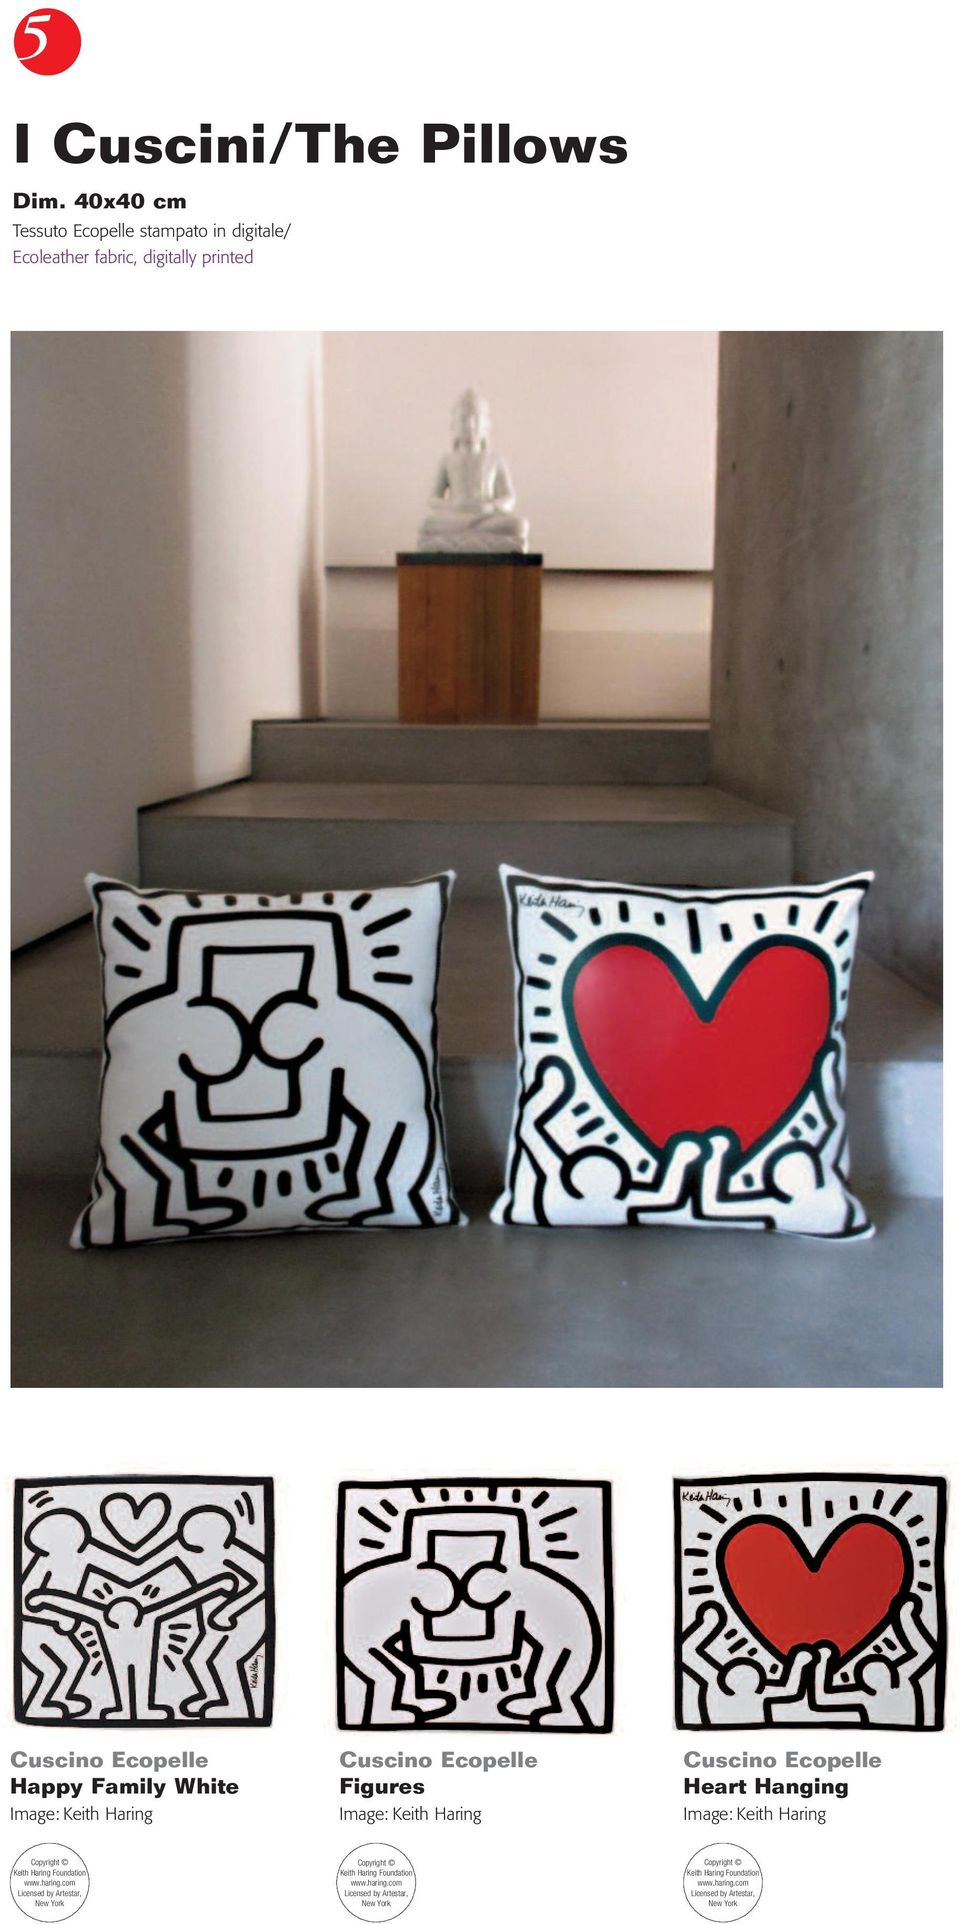 Image: Keith Haring Cuscino Ecopelle Figures Image: Keith Haring Cuscino Ecopelle Heart Hanging Image: Keith Haring Copyright